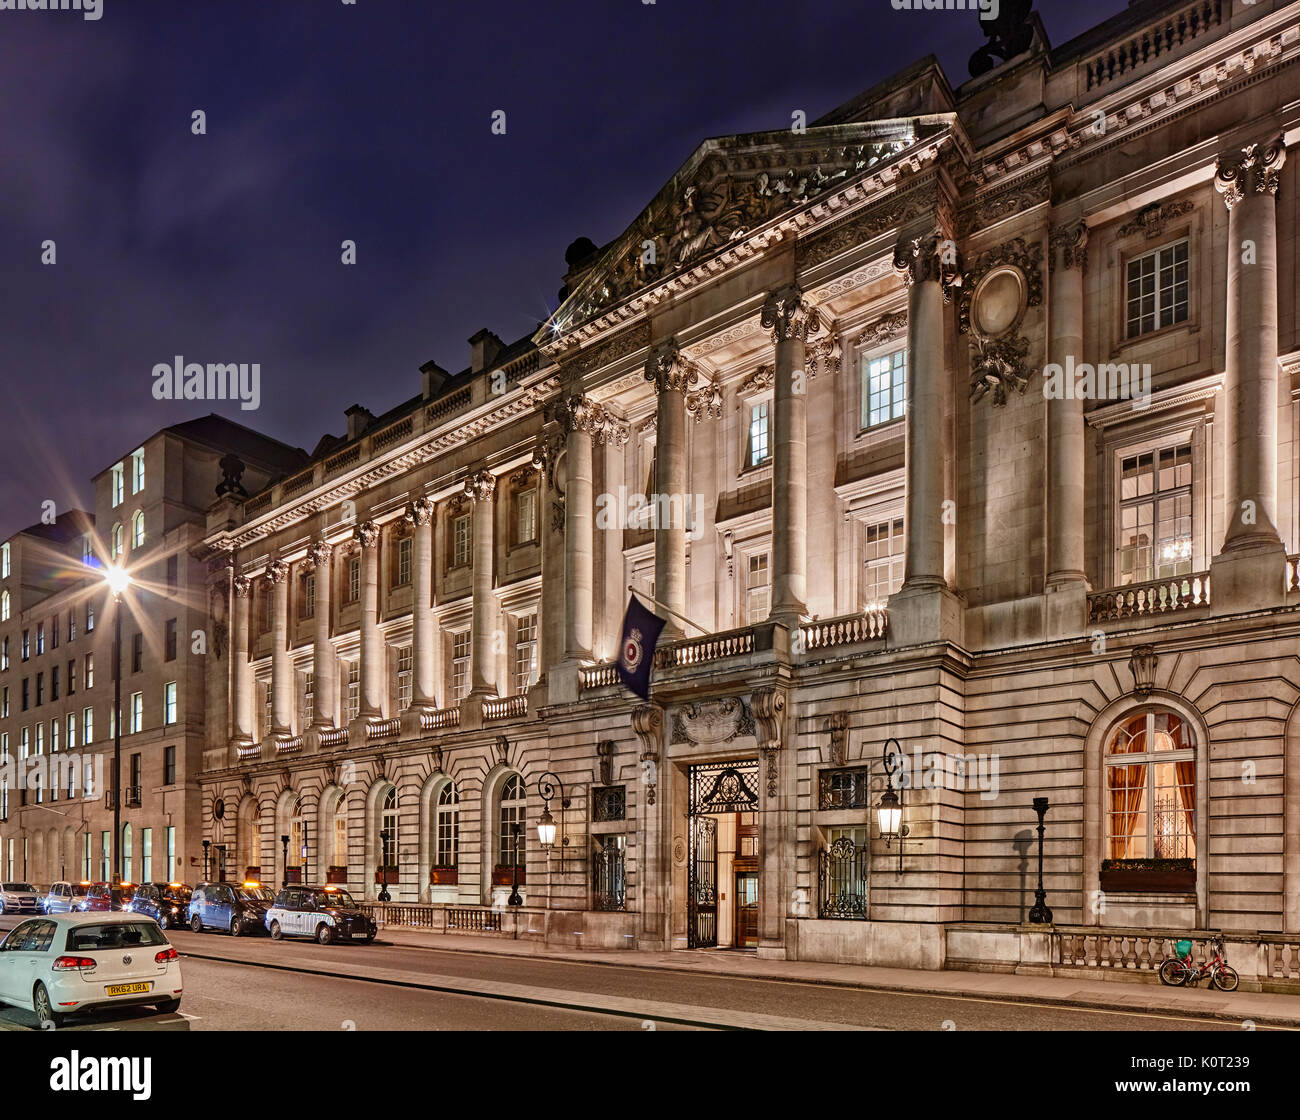 RAC Club - twilight, Pall Mall, London - Stock Image